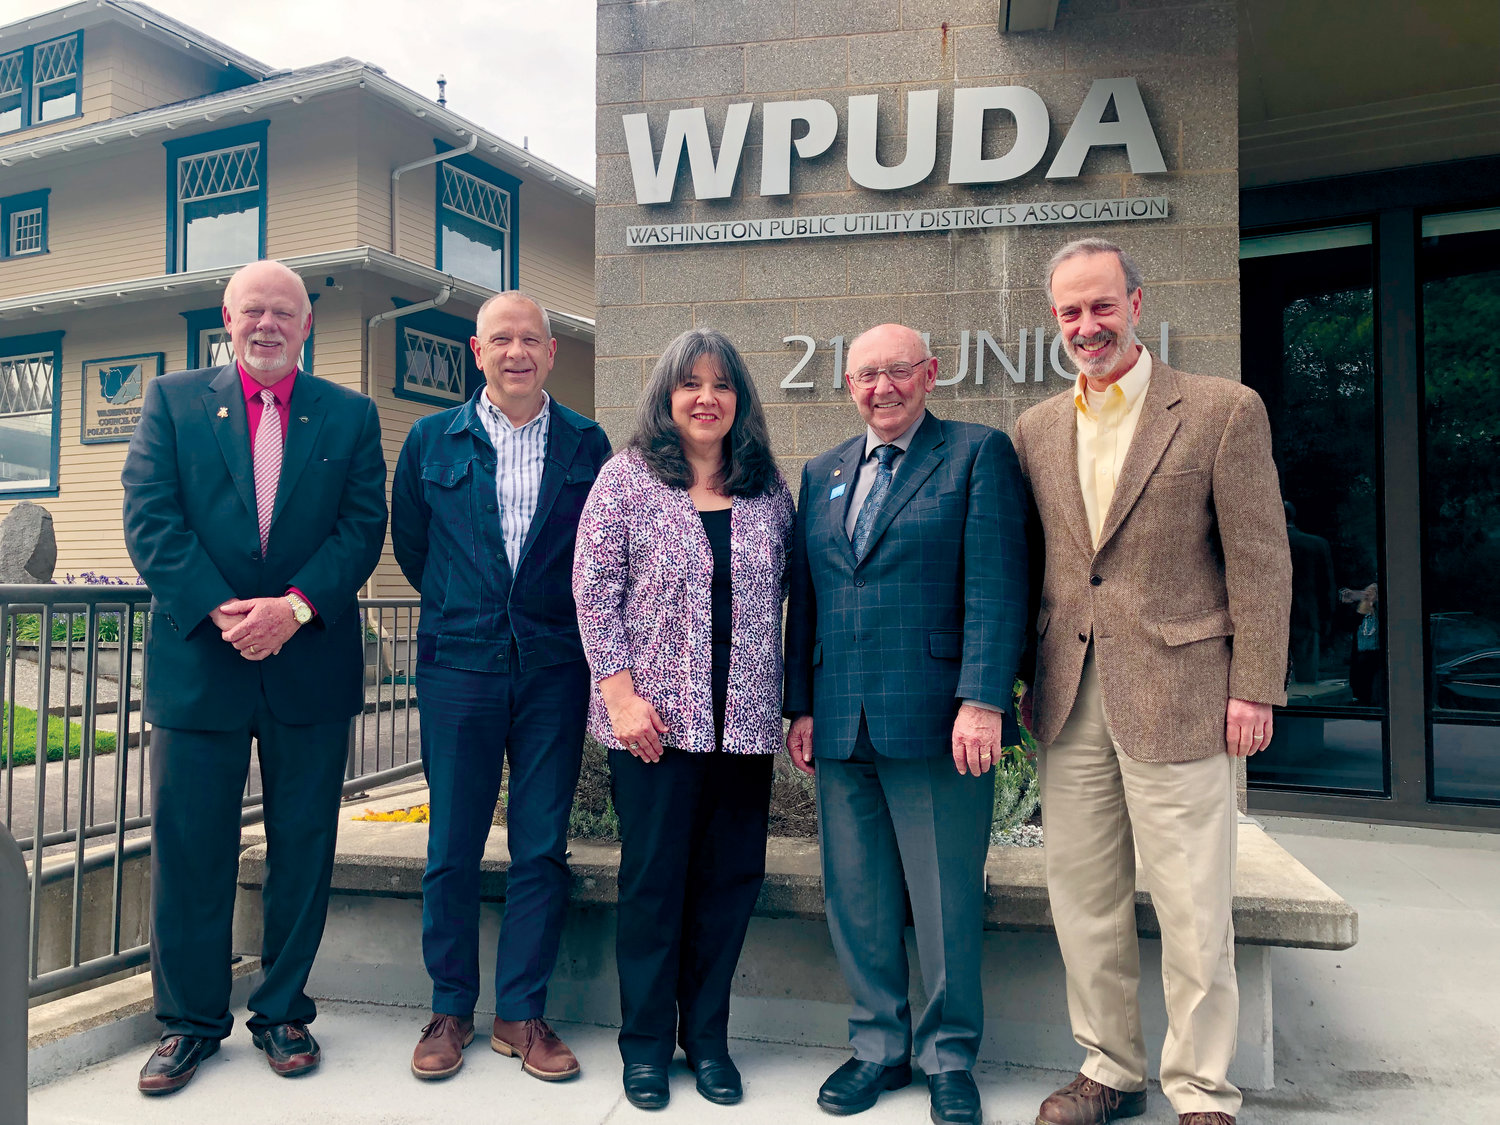 Jefferson County PUD Commissioner Ken Collins was elected Secretary of the Washington Public Utility Districts Association. Other new officers include Chelan County PUD Commissioner Randy Smith, from Cashmere, President; Skamania County PUD Commissioner Liz Green, Vice-President and Lewis County PUD Commissioner Ben Kostick.